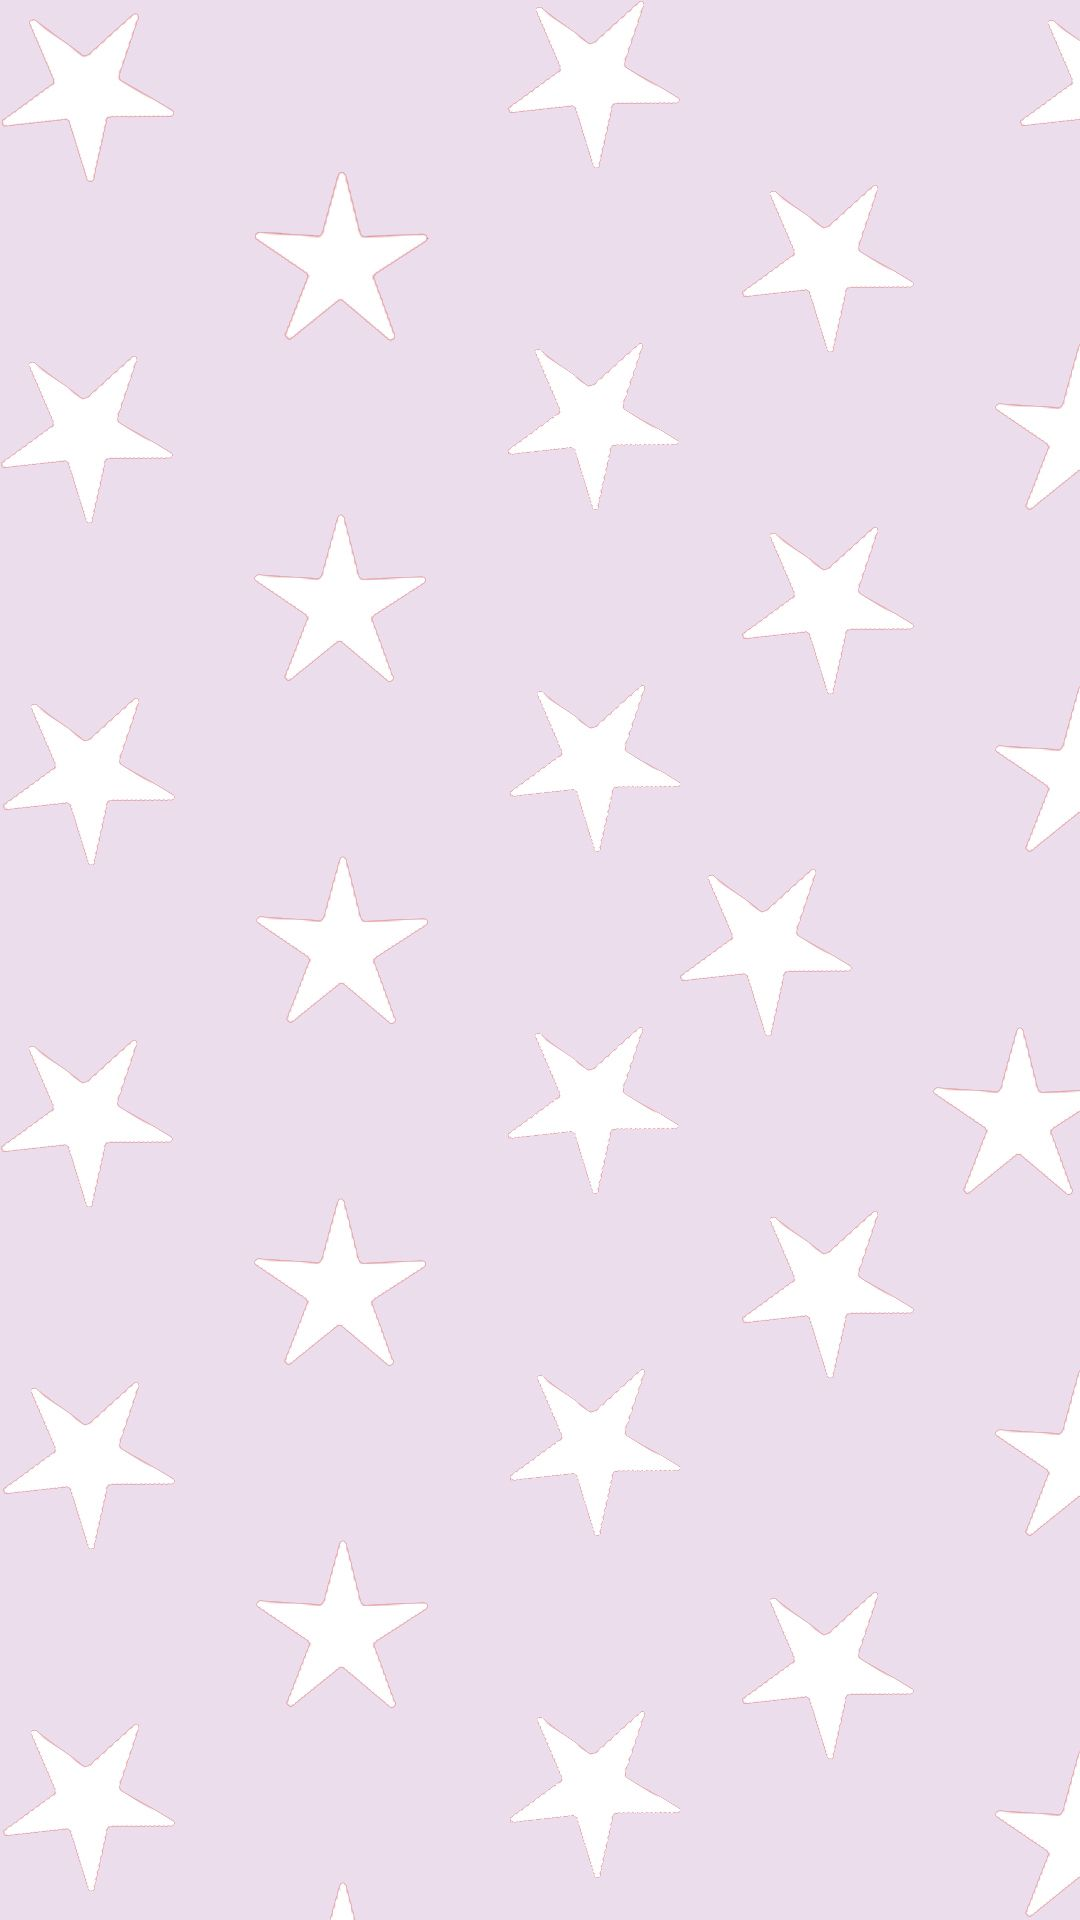 stars wallpaper background iphone Iphone background